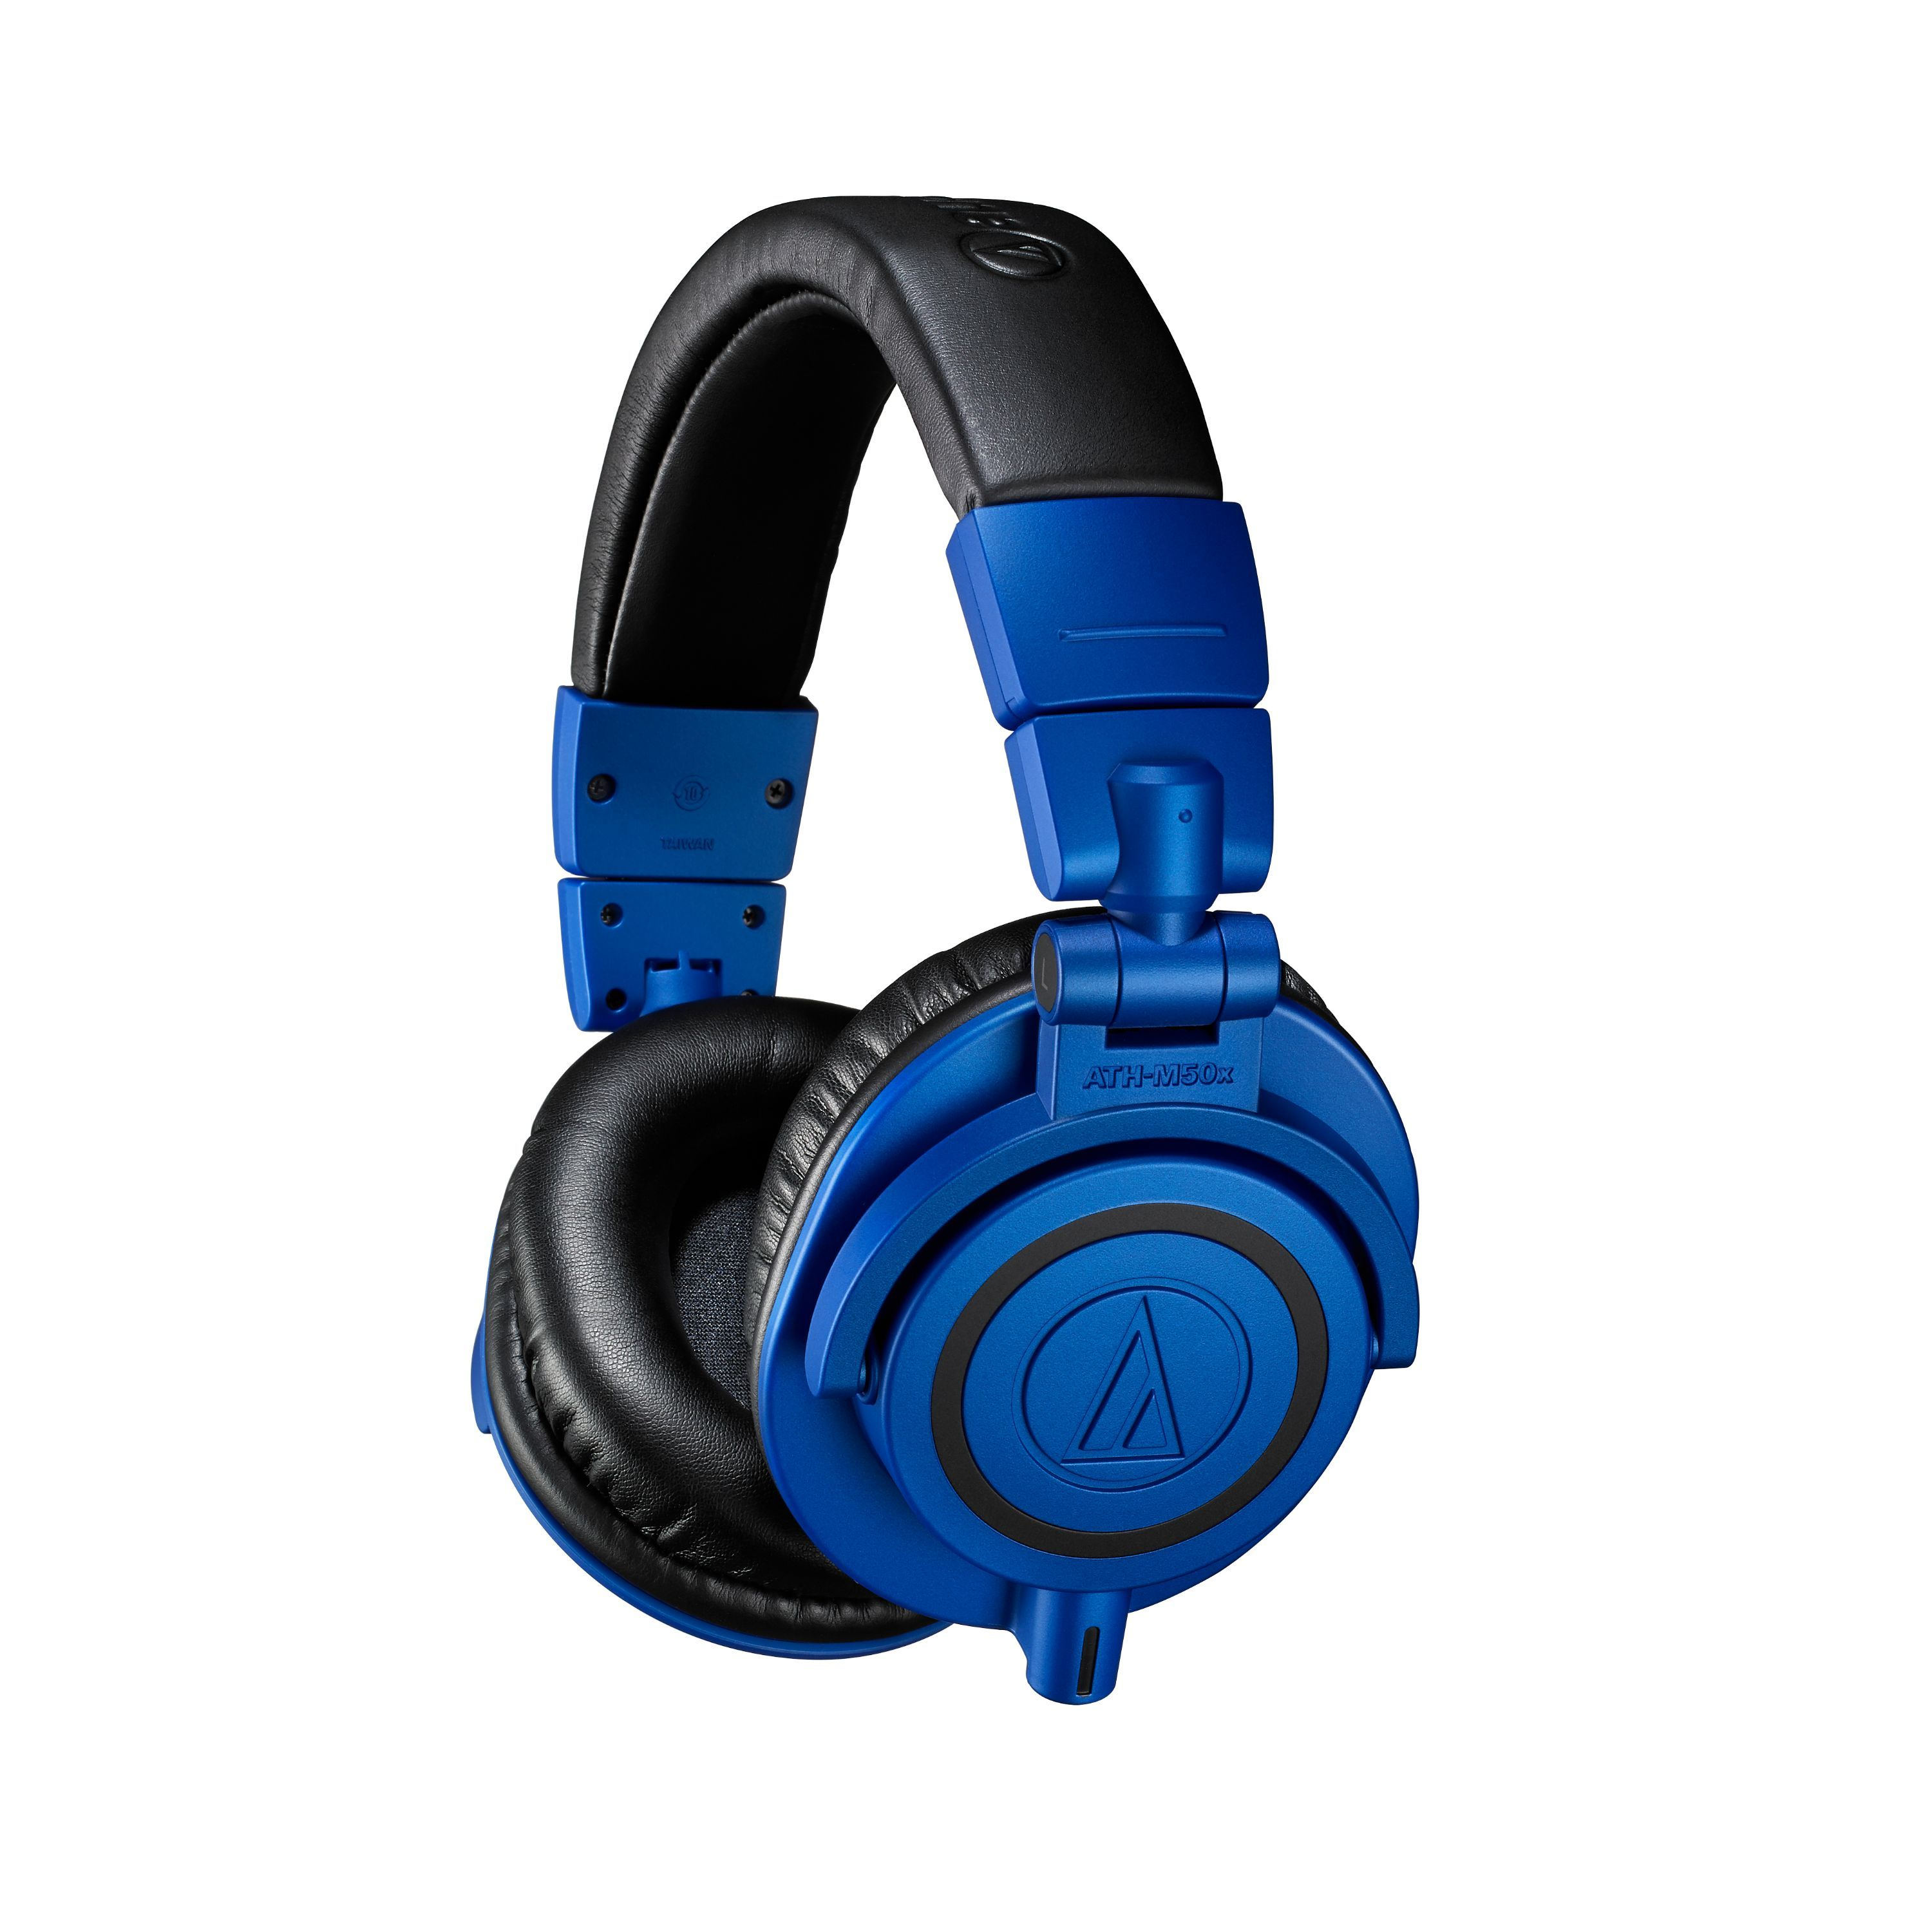 Audio-Technica ATH-M50X Pro Monitor Headphones in Limited Edition Blue & Black - Andertons Music Co. #audioheadphones